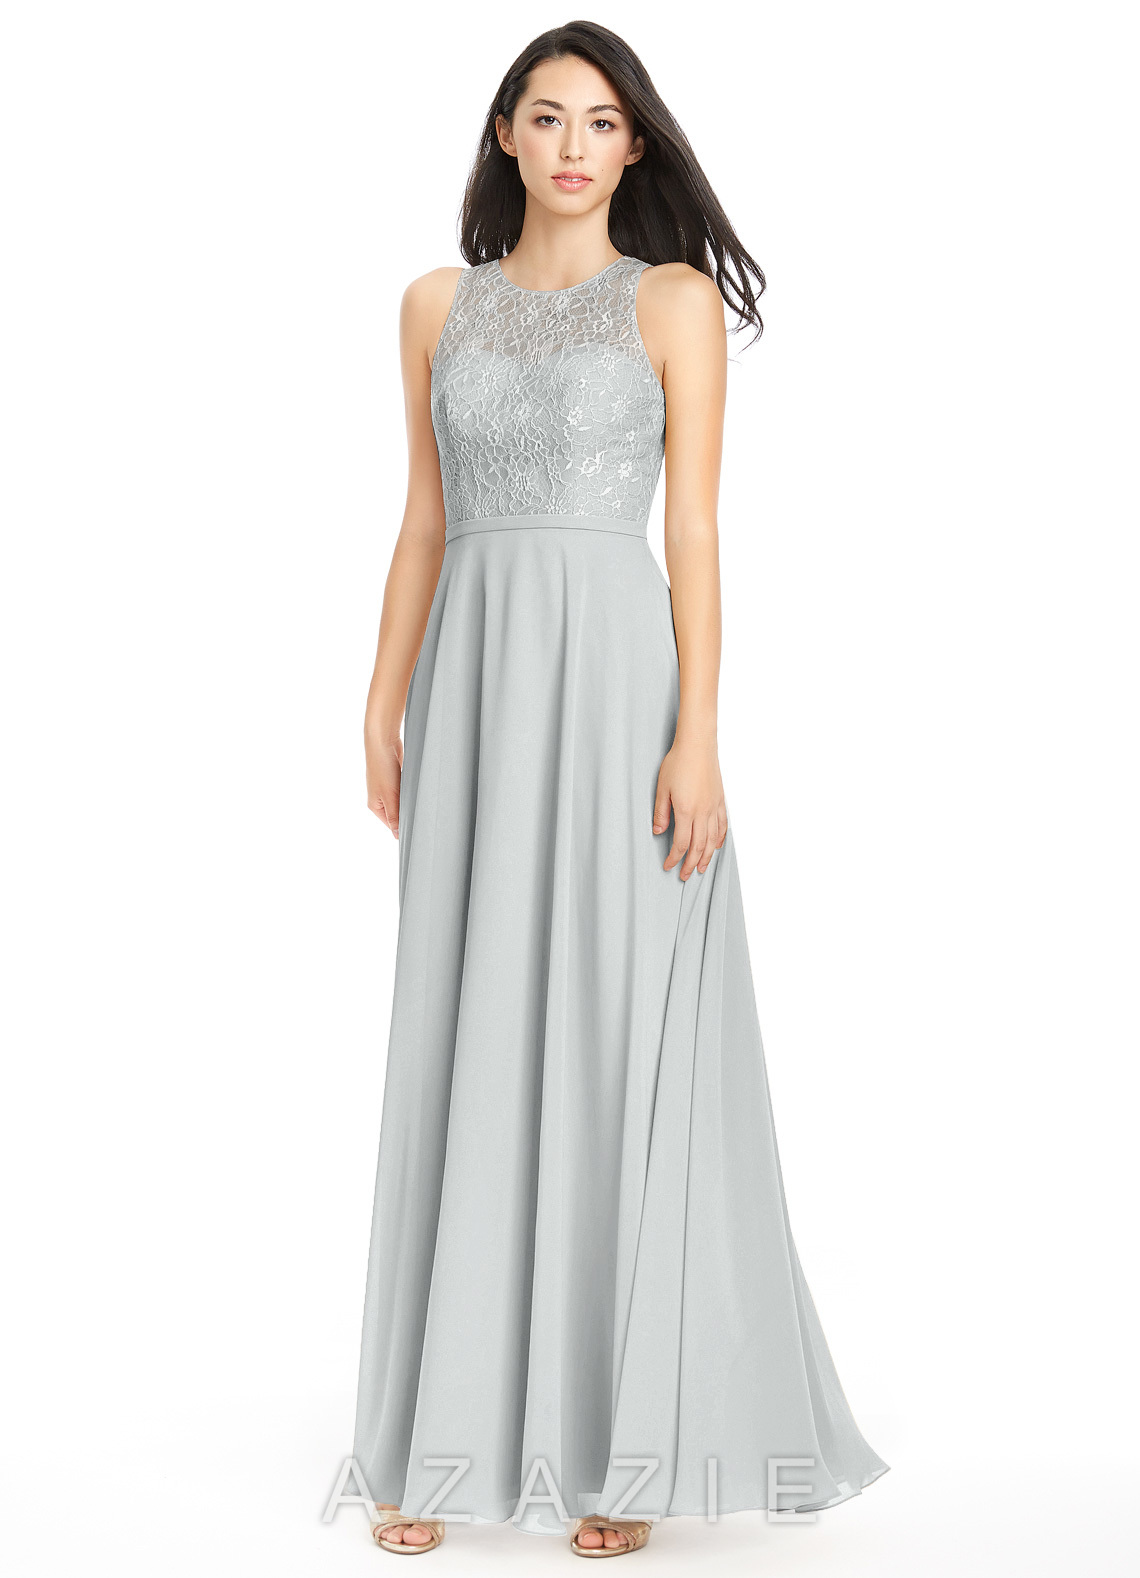 Azazie frederica bridesmaid dress azazie color silver ombrellifo Image collections